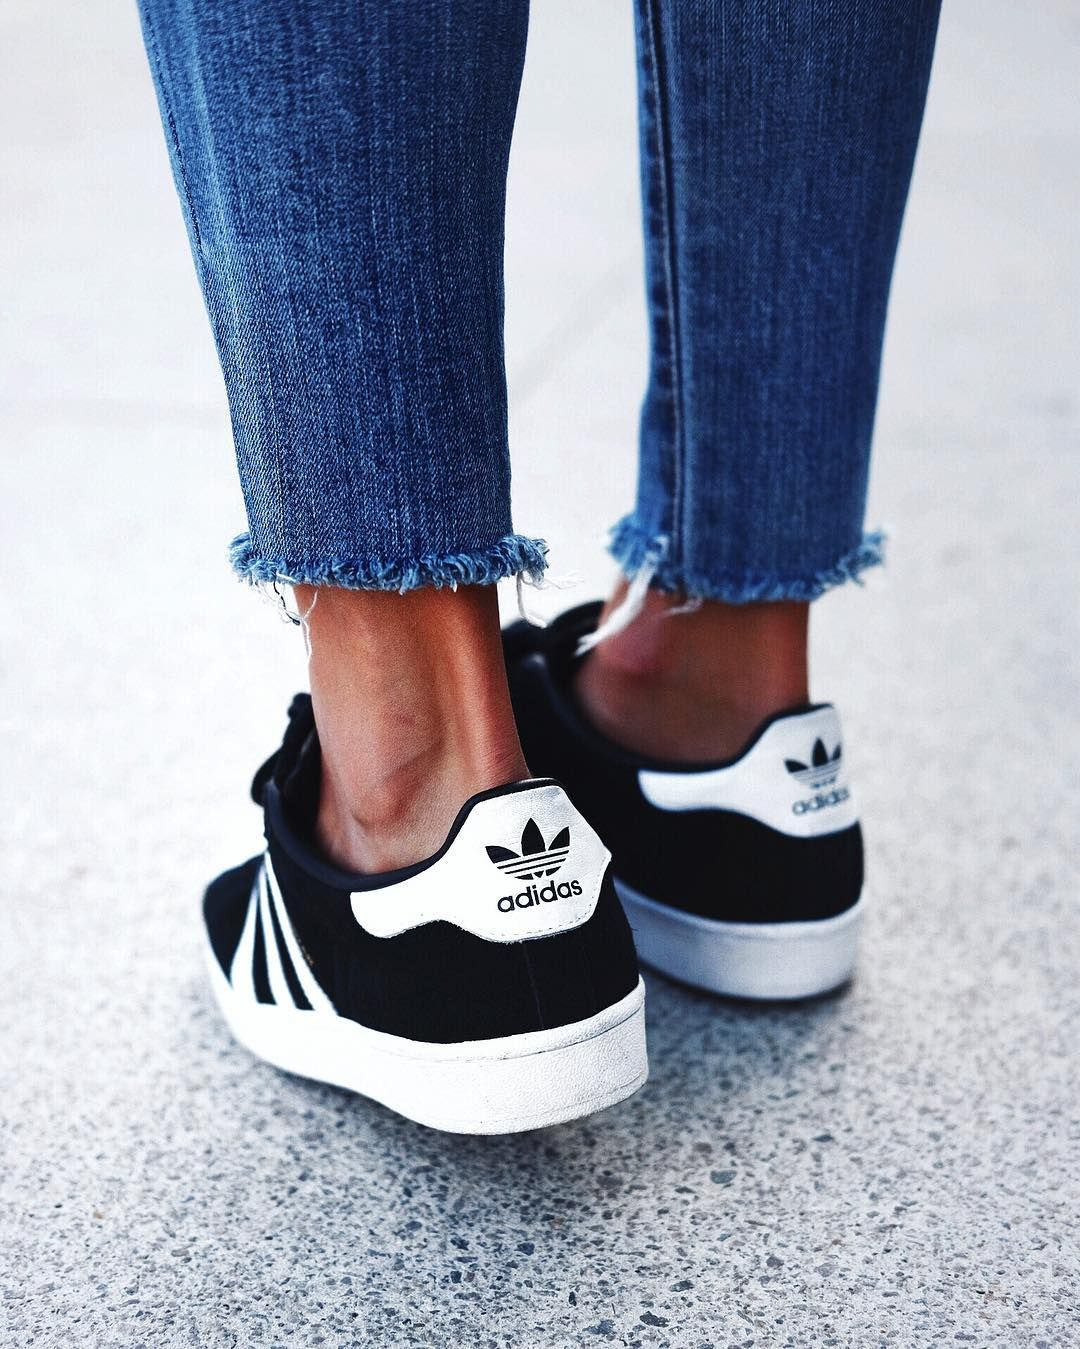 Raw hems and fresh adidas